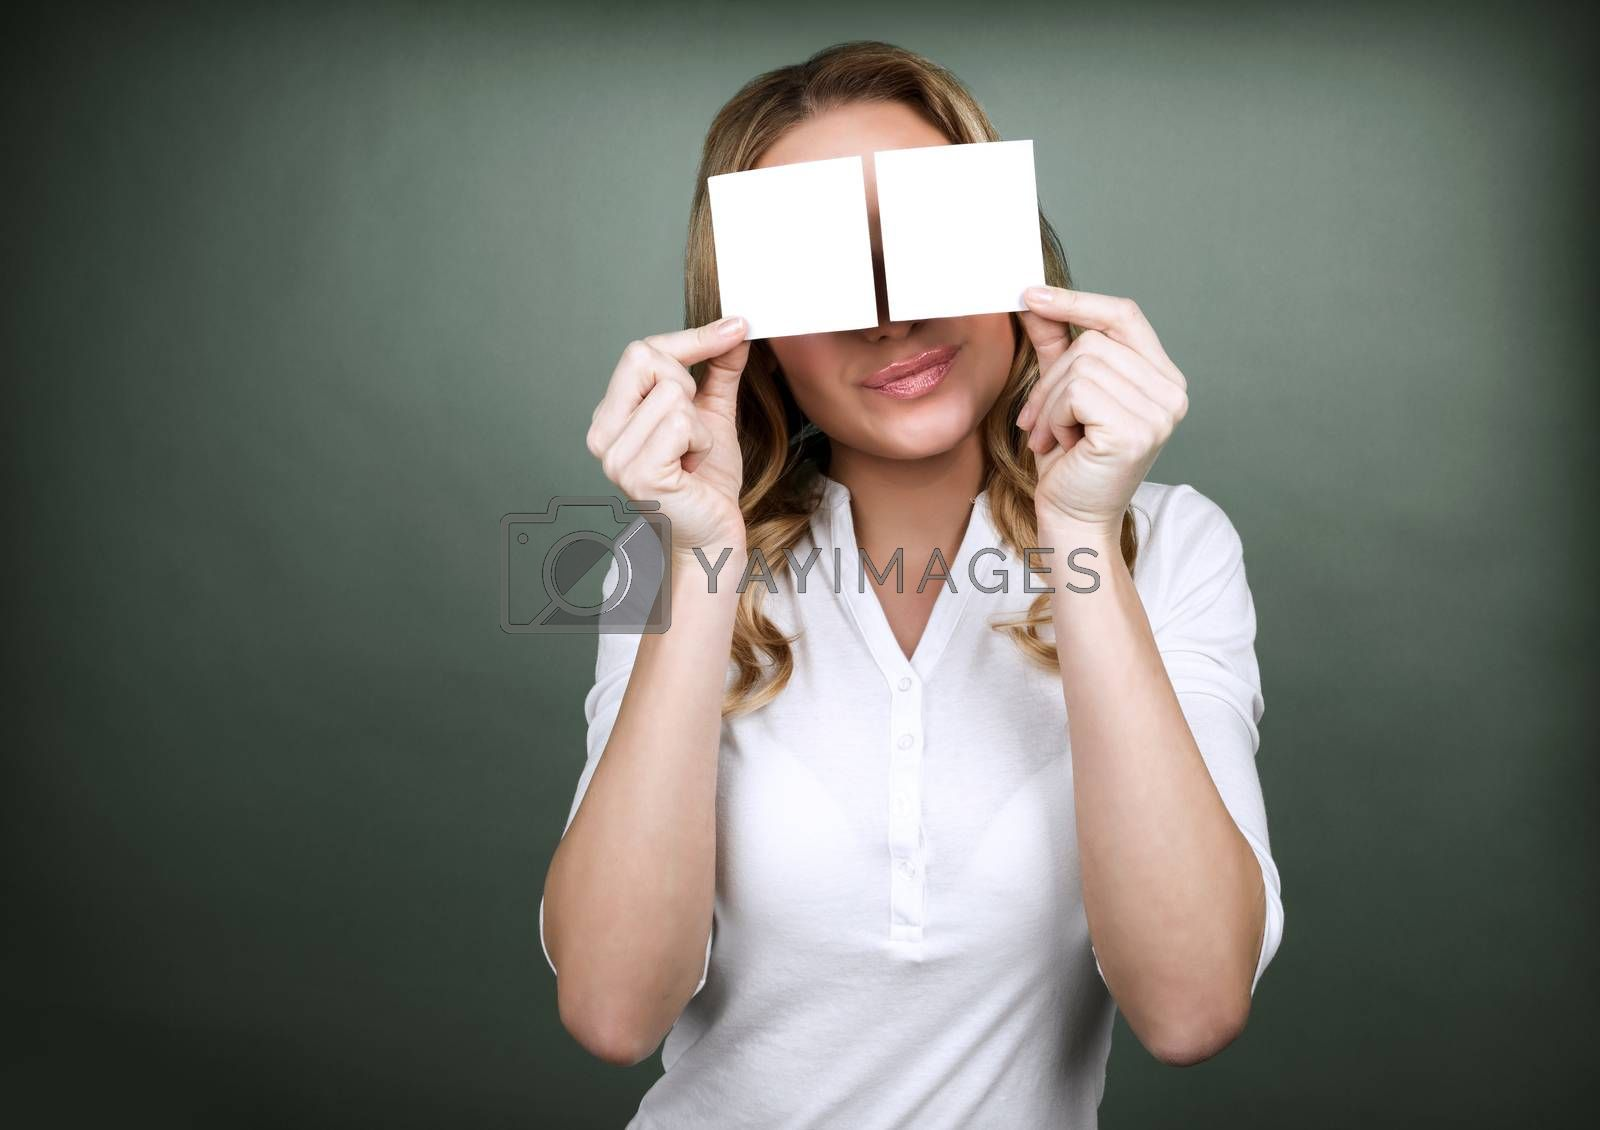 Portrait of young cute girl holding two blank card on her eyes isolated on grey background, copy space for information, advertisement concept